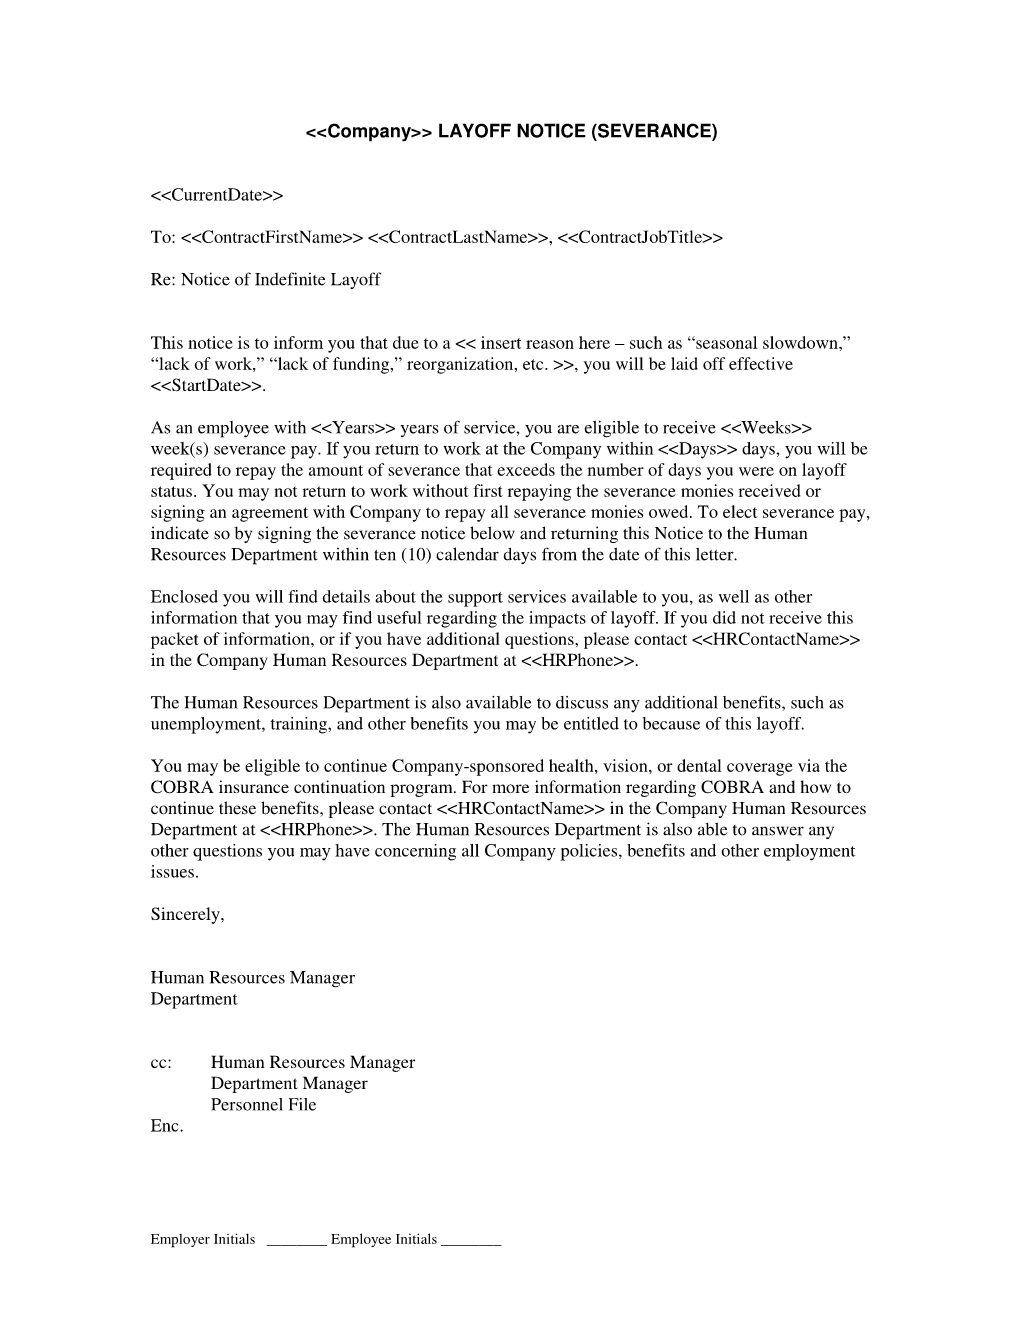 Contract Negotiation Letter Template - How to Write A Severance Letter Letter format formal Sample